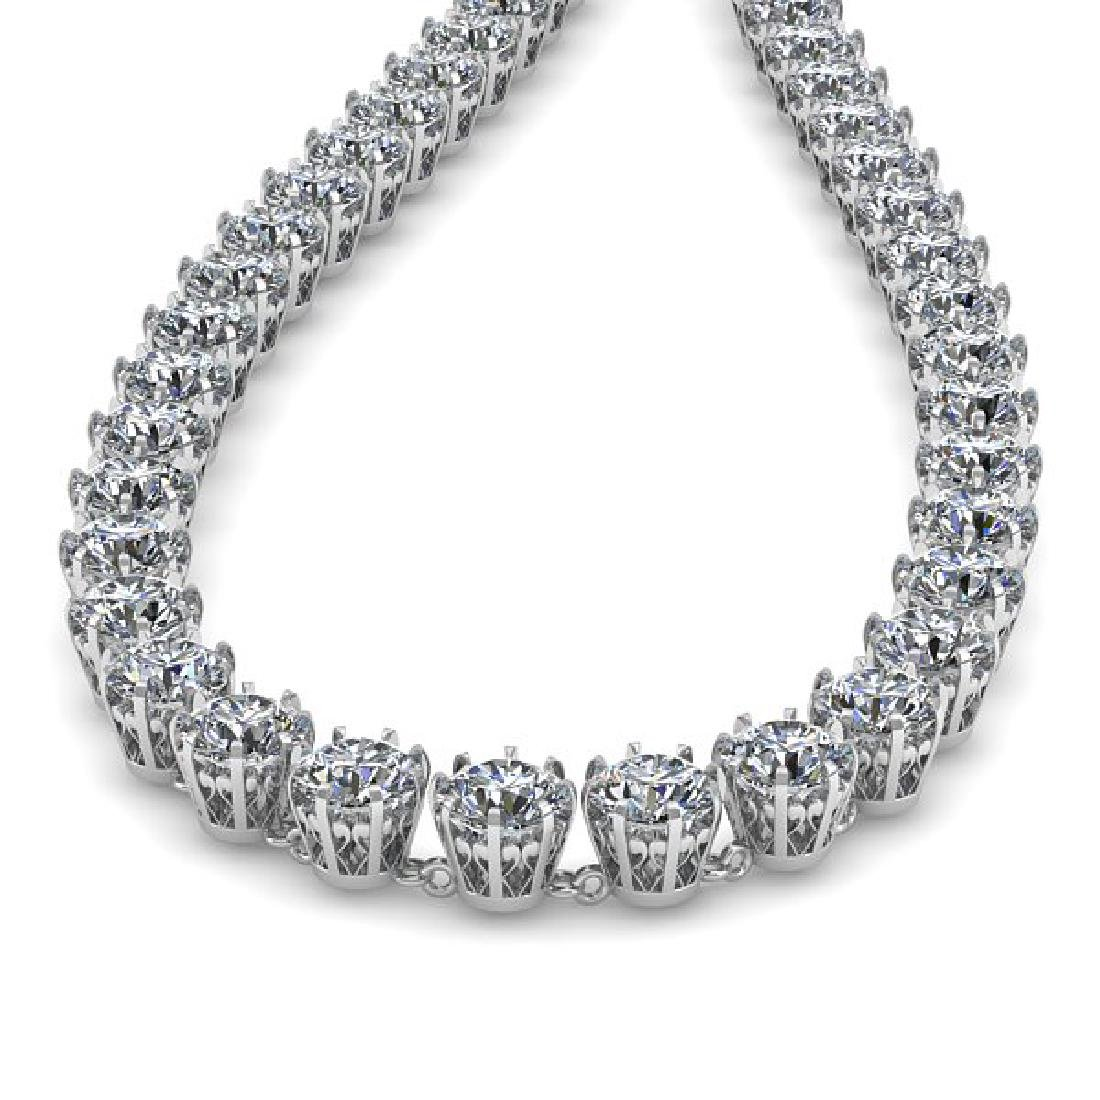 34 CTW SI Certified Diamond Necklace 18K White Gold - 2